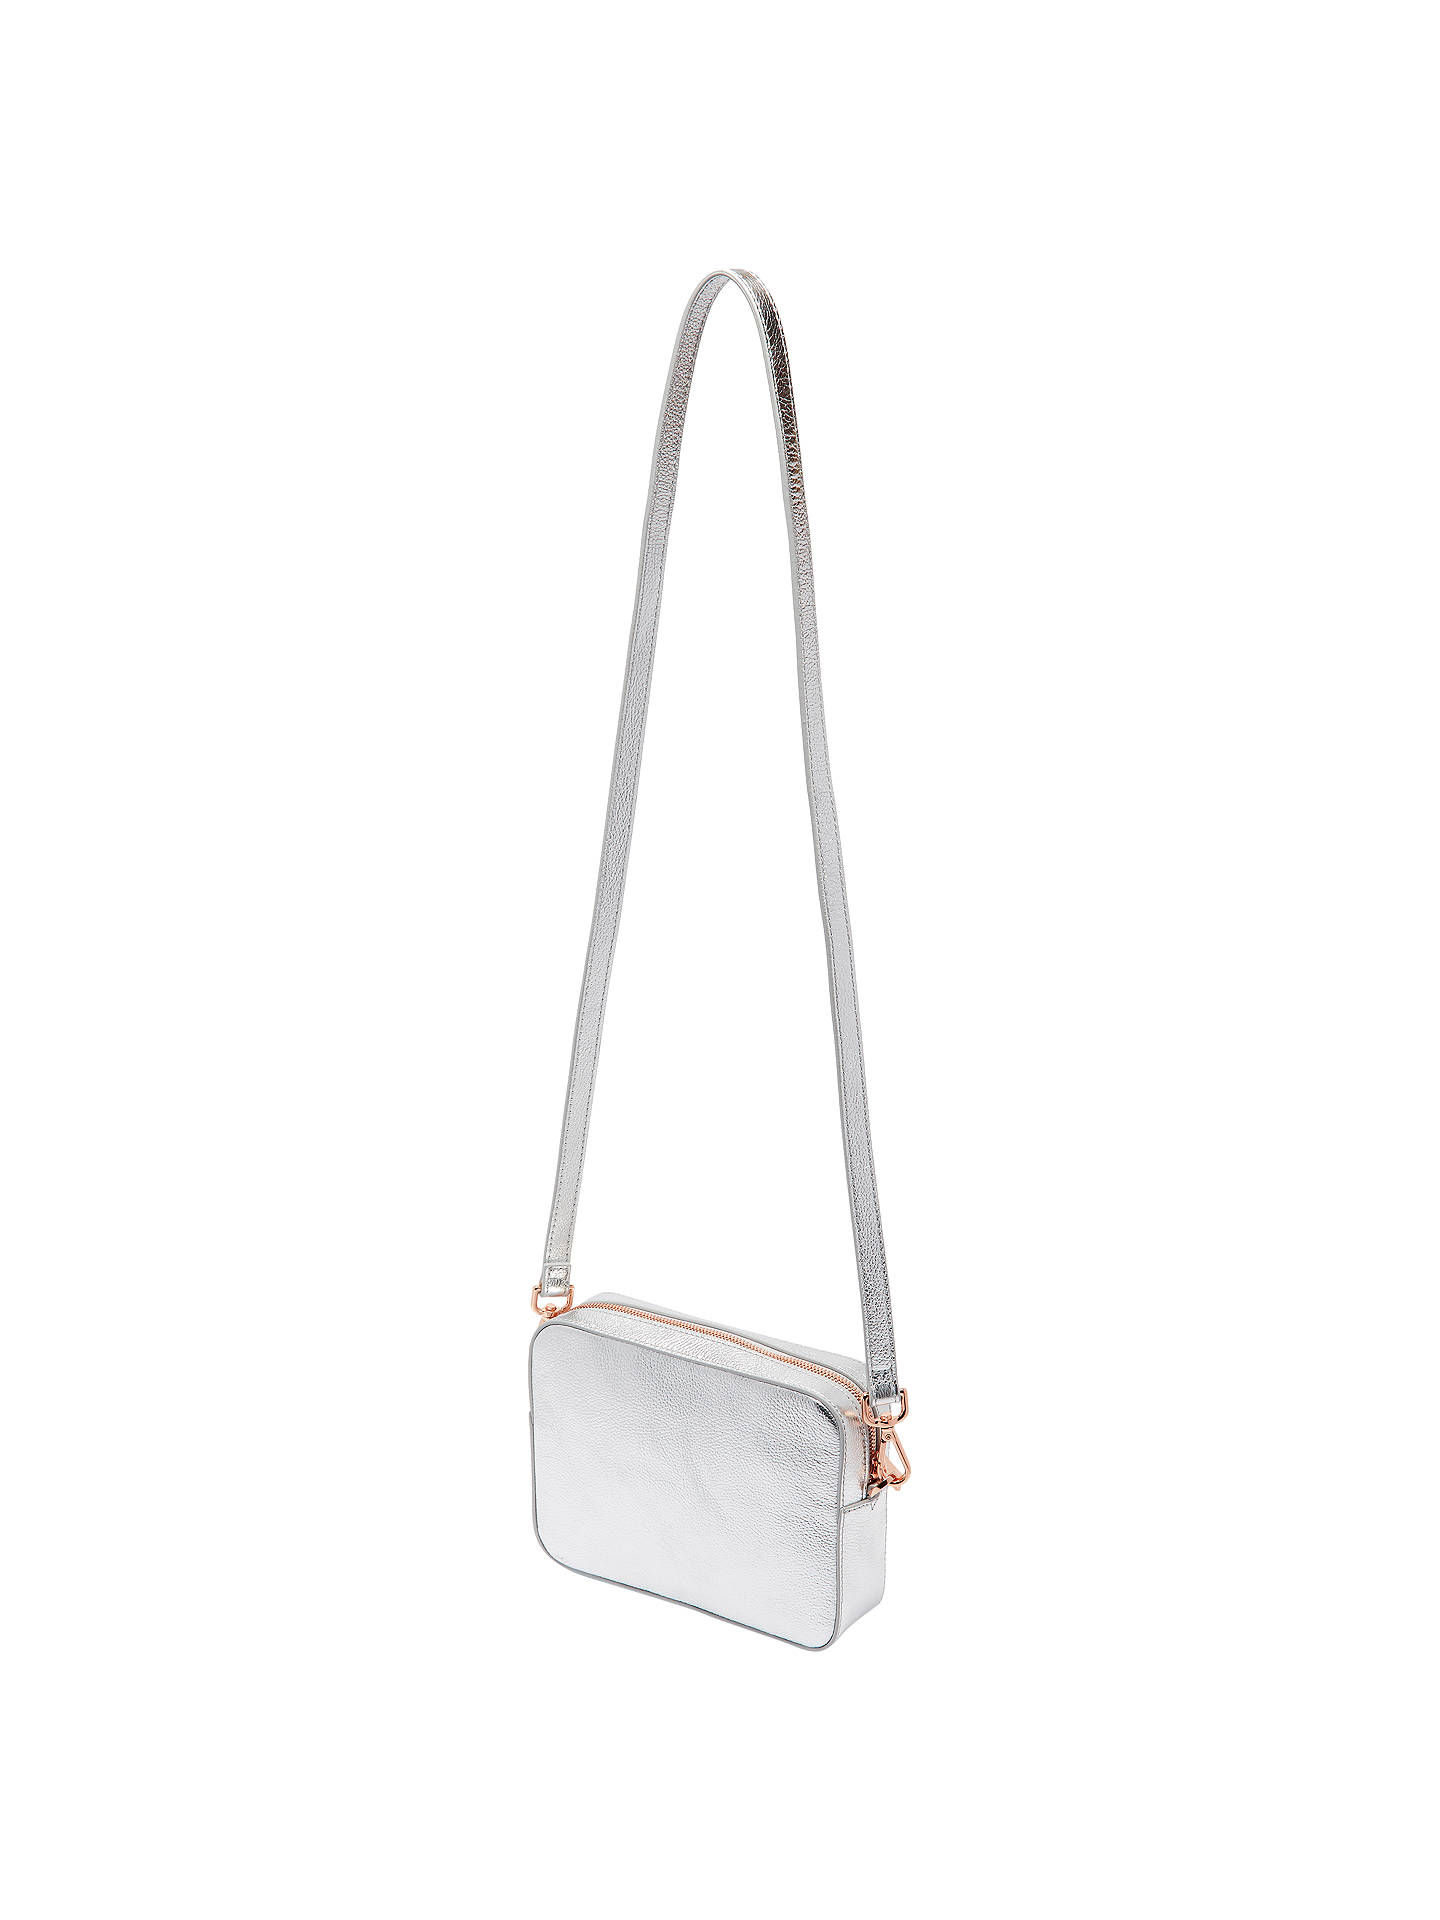 35b15a99687 ... Buy Ted Baker Darwina Tassel Trim Leather Camera Cross Body Bag, Silver  Online at johnlewis ...